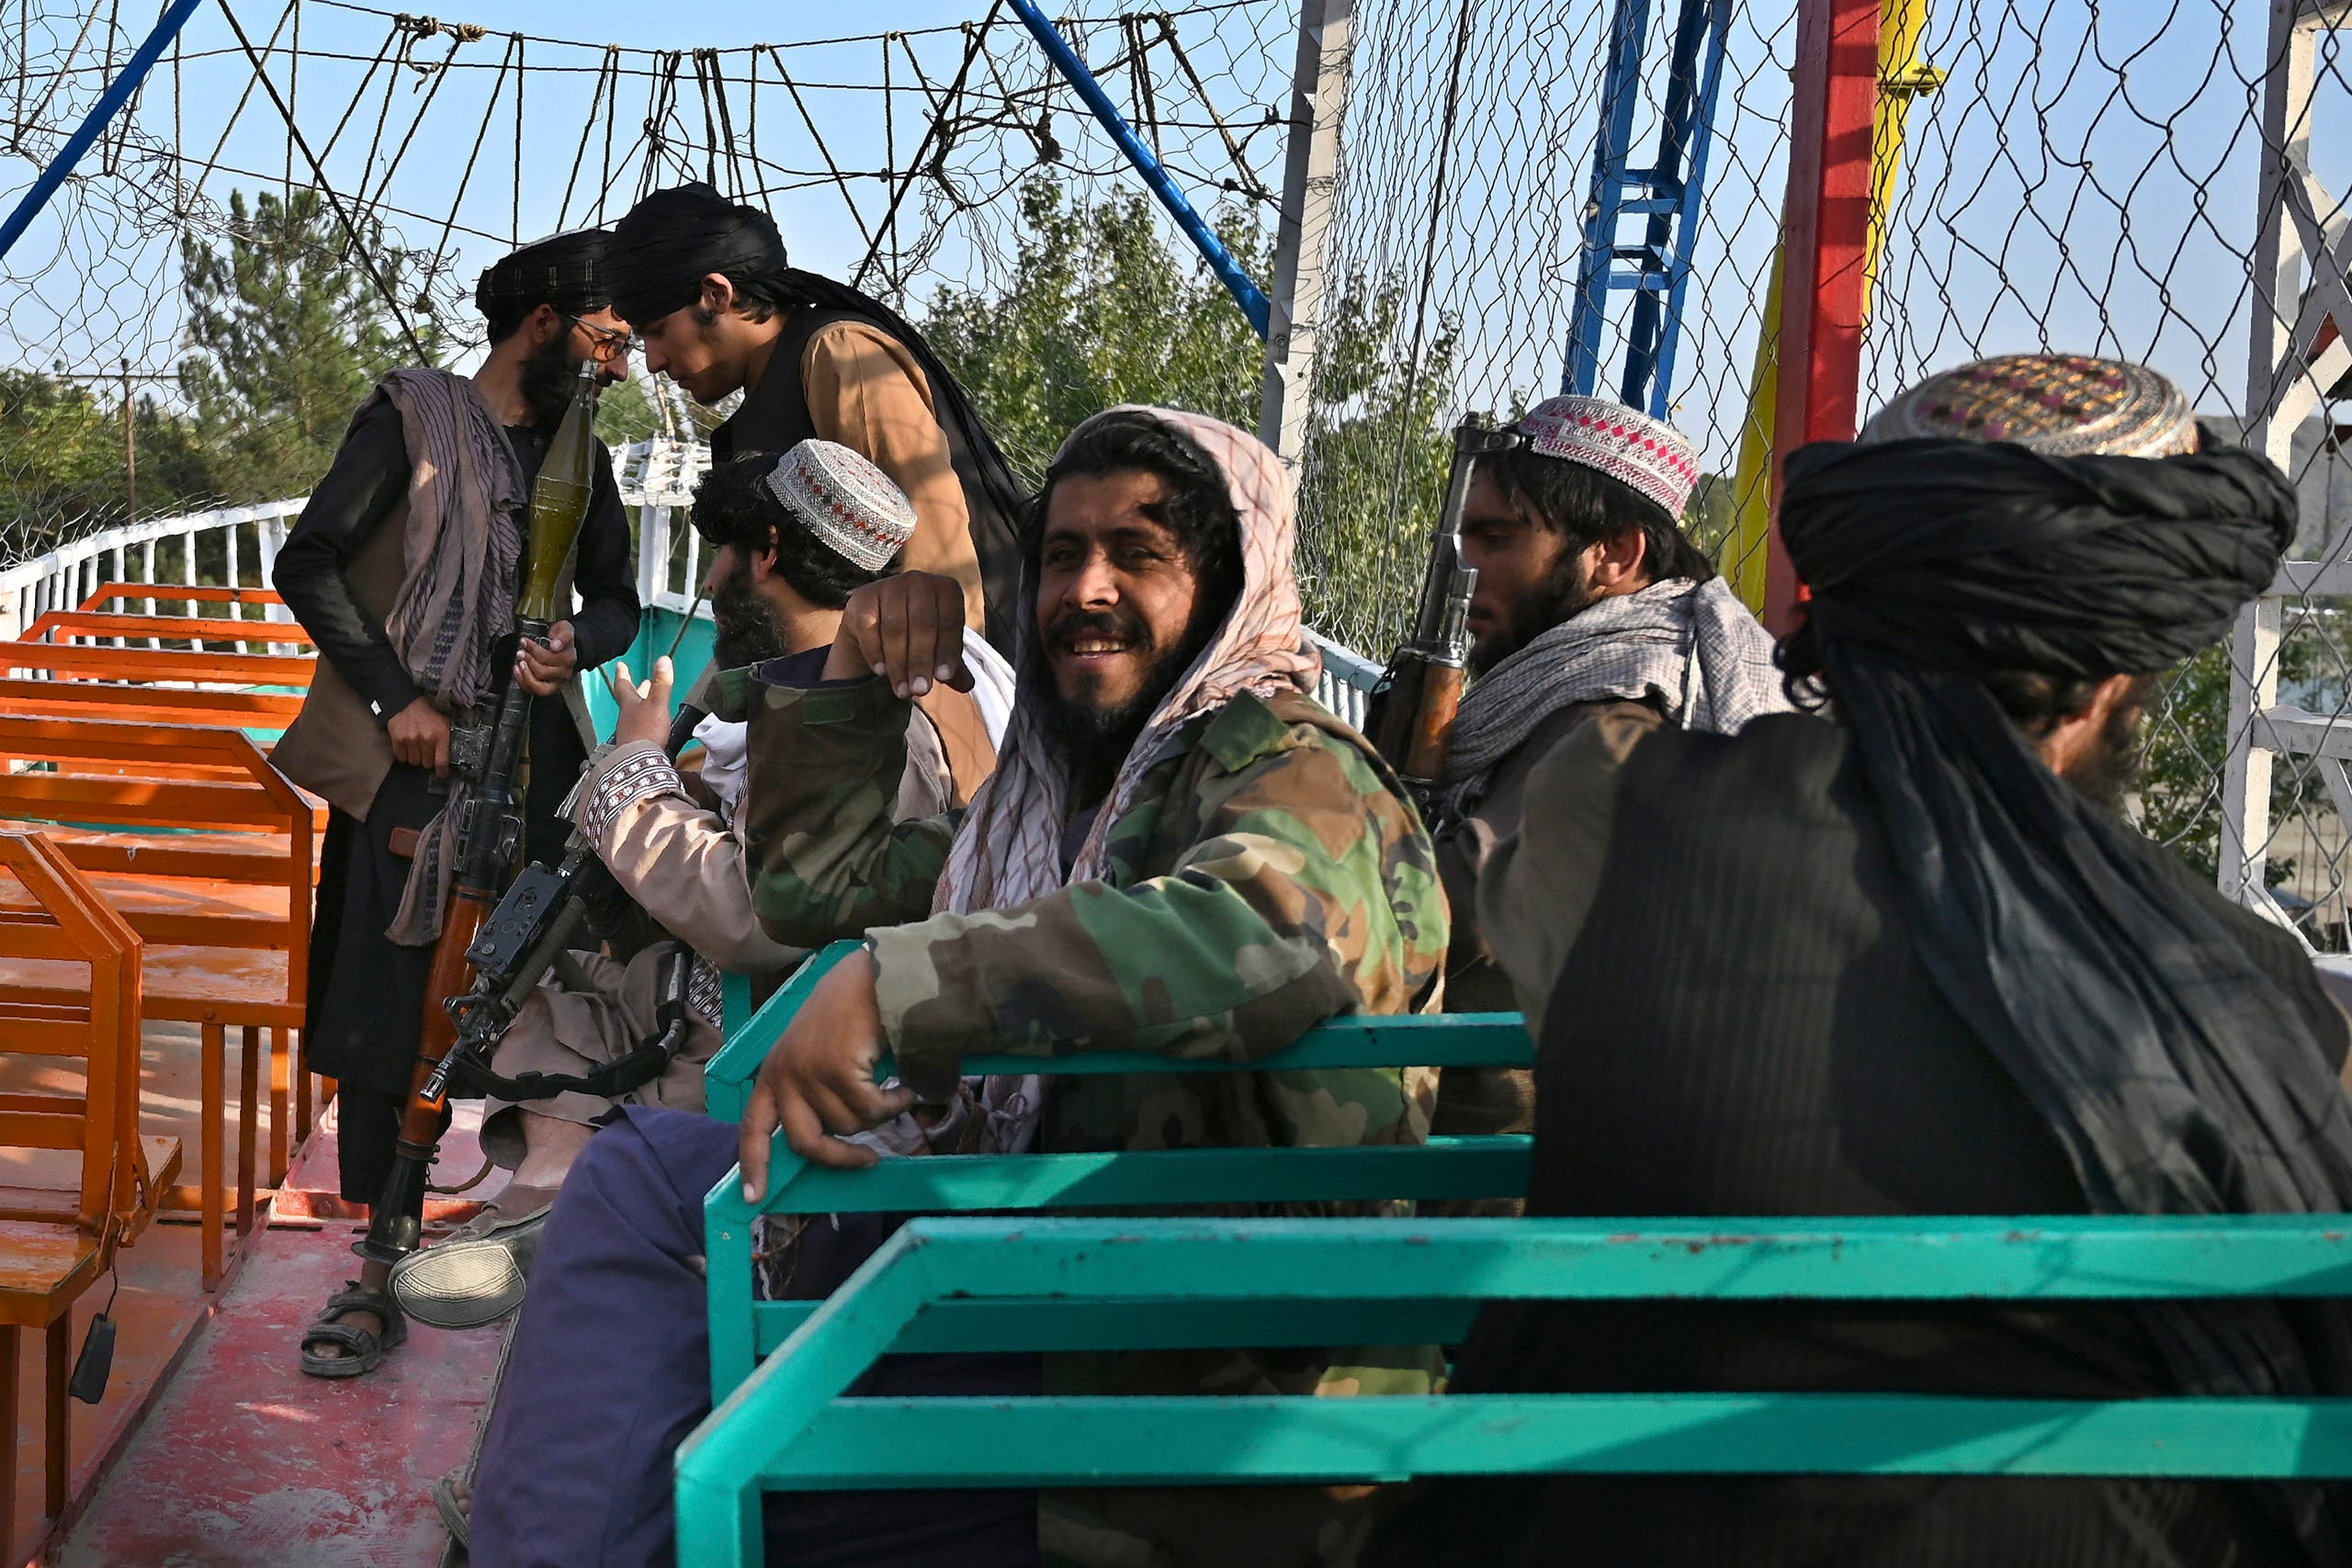 In this photograph taken on September 28, 2021 Taliban fighters enjoy a ride on a pirate ship attraction in a fairground at Qargha Lake on the outskirts of Kabul. (AFP)